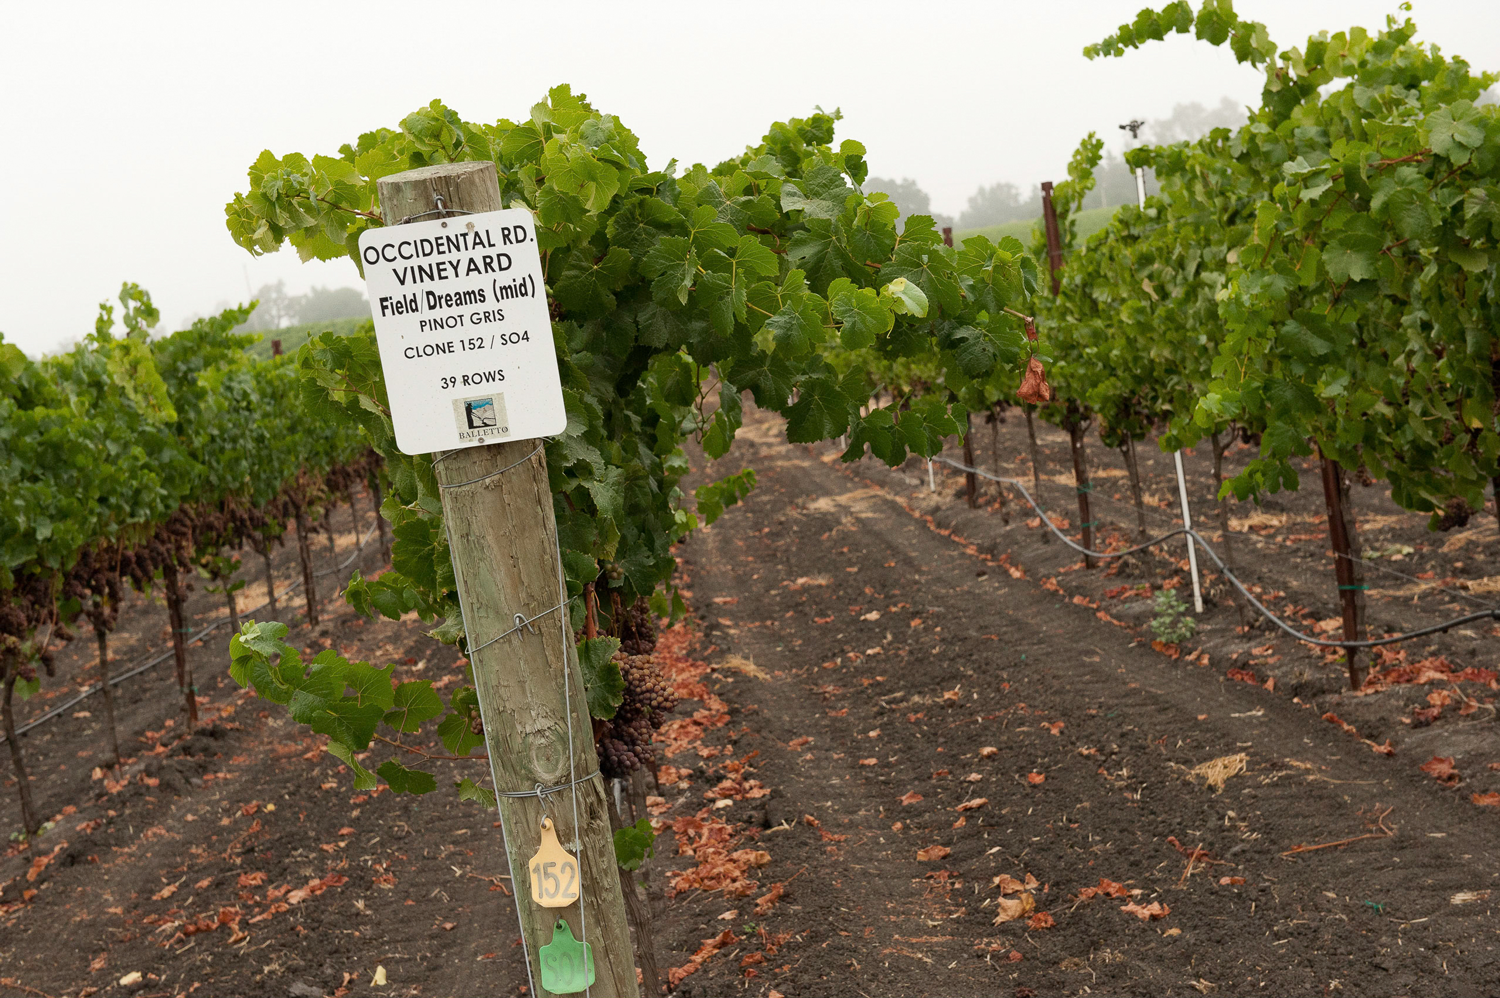 Occidental_Road_Vineyard_Pinot_Gris .png